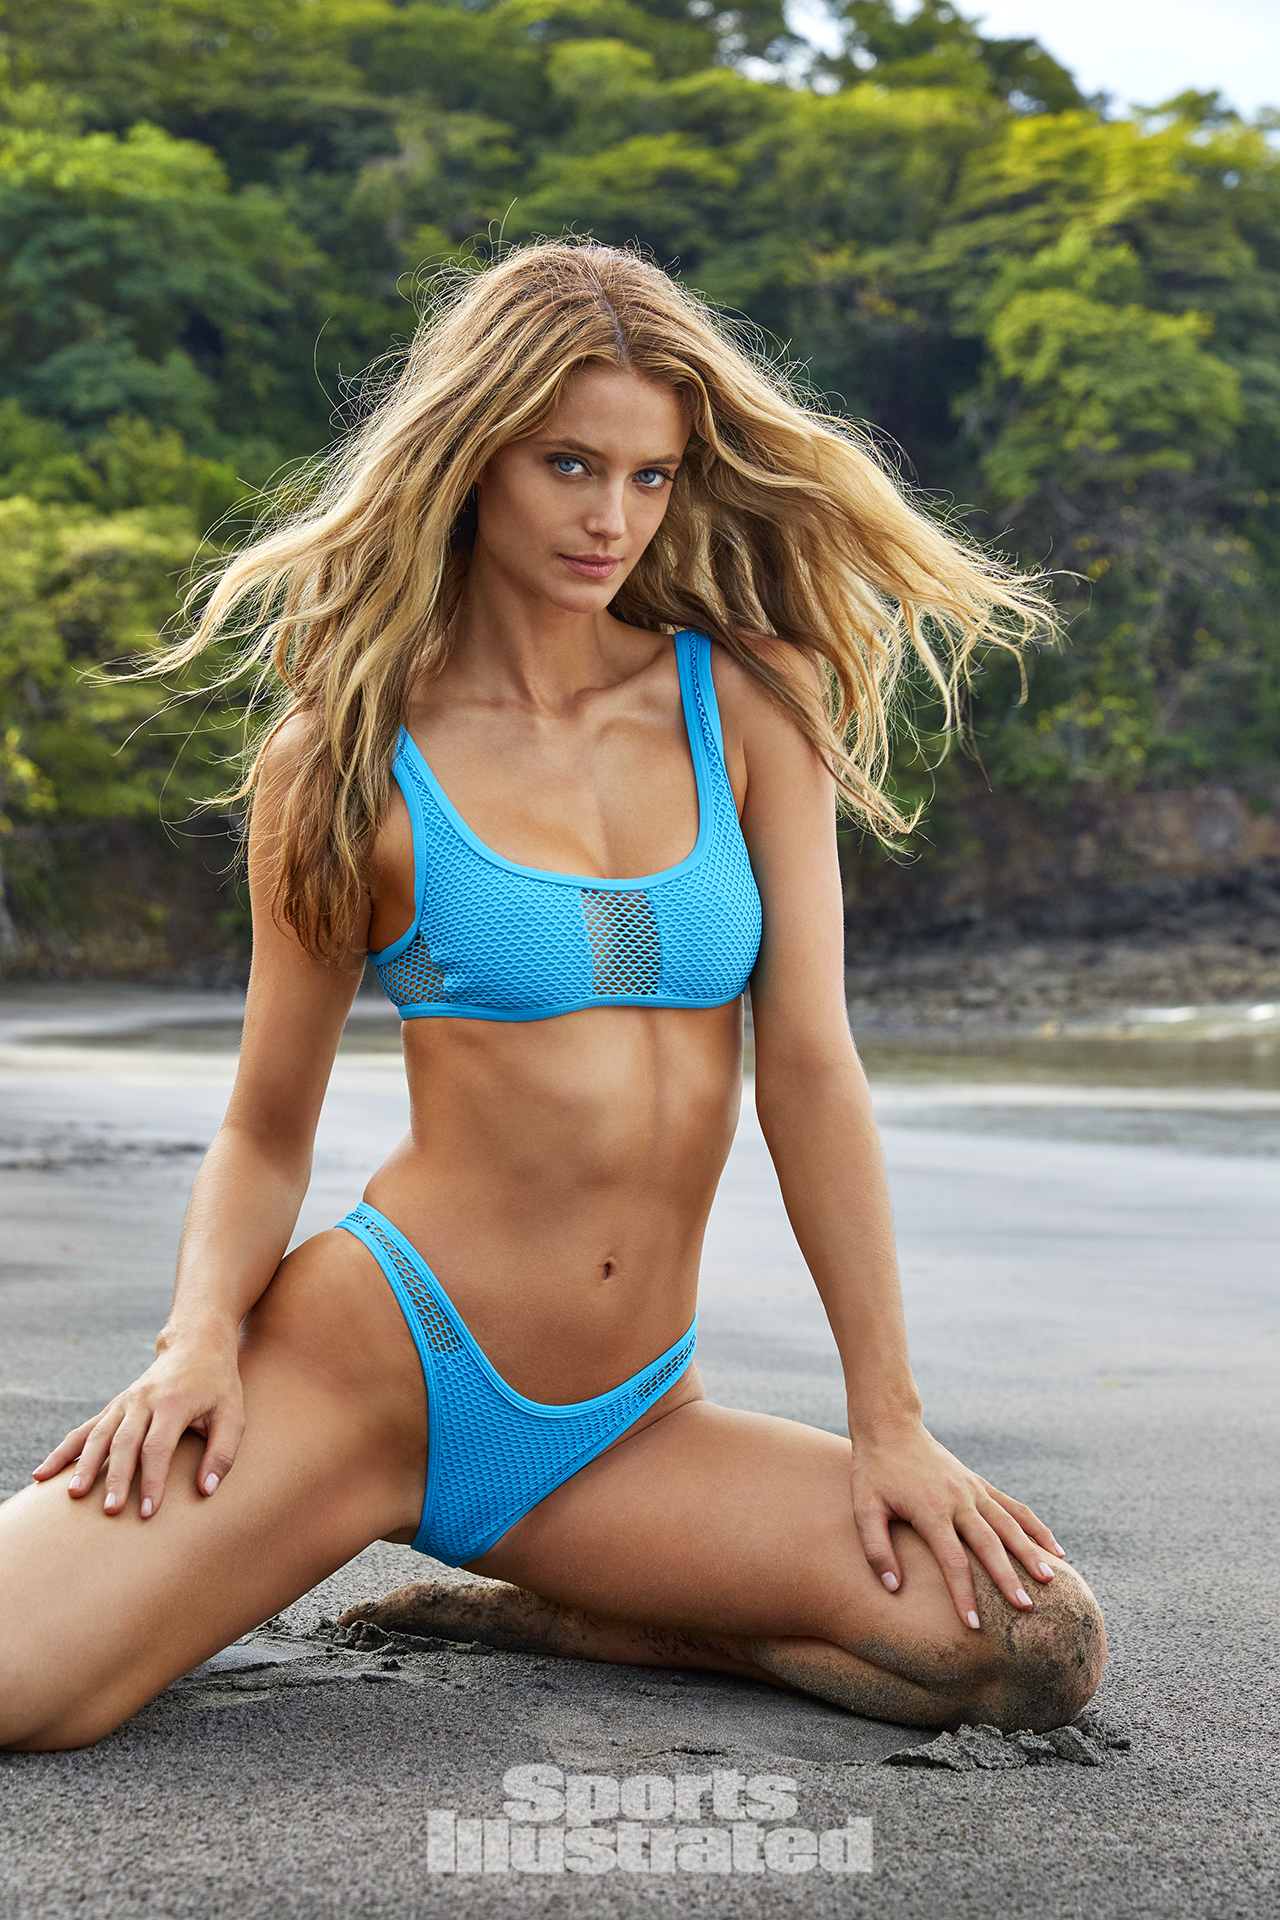 Kate Bock SI Sports Illustrated Swimsuit 2019 25 GotCeleb